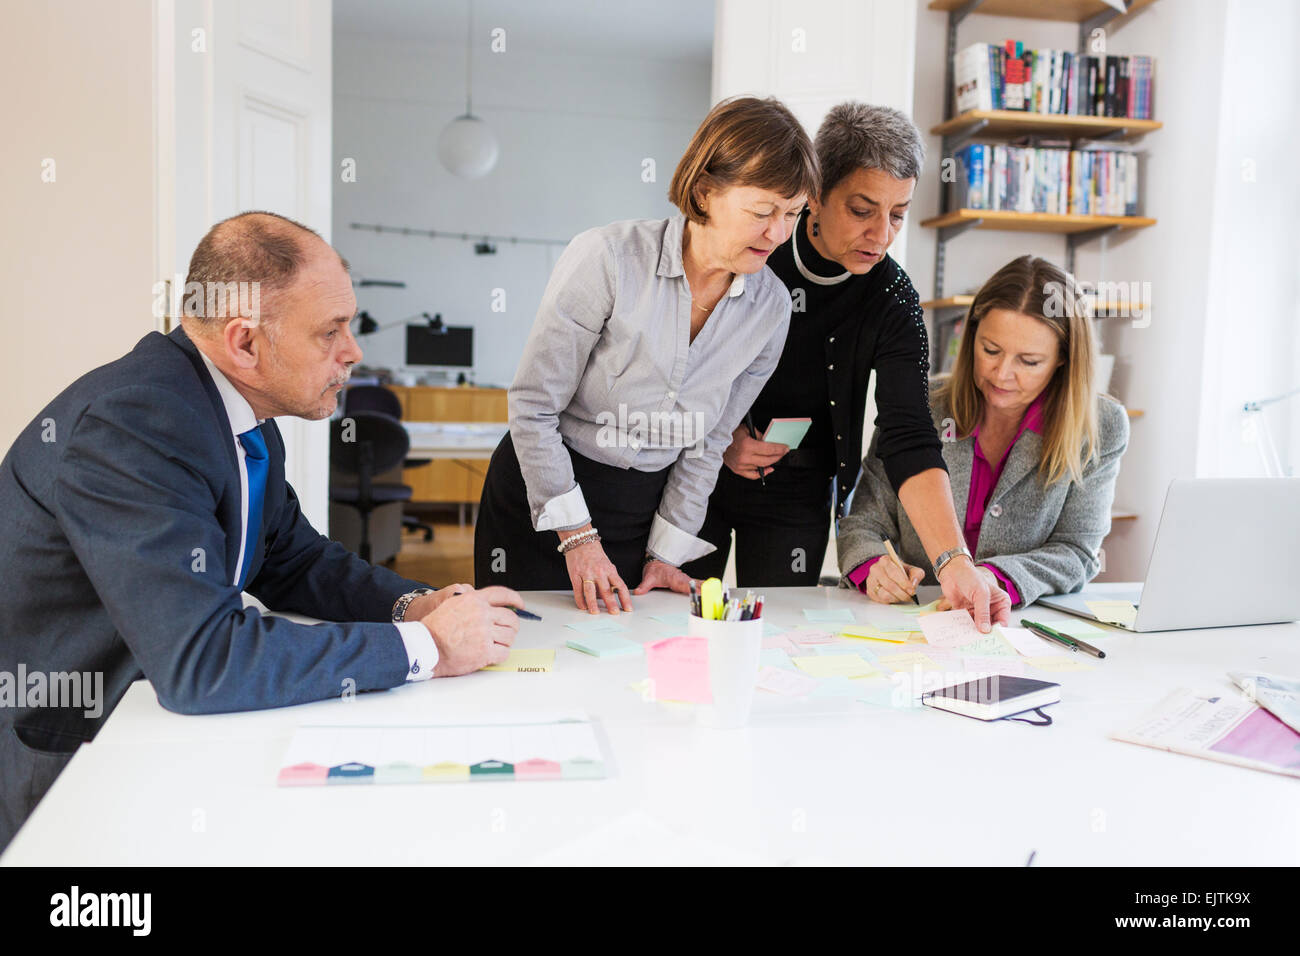 Businesswomen communicating over reminder notes at office desk - Stock Image